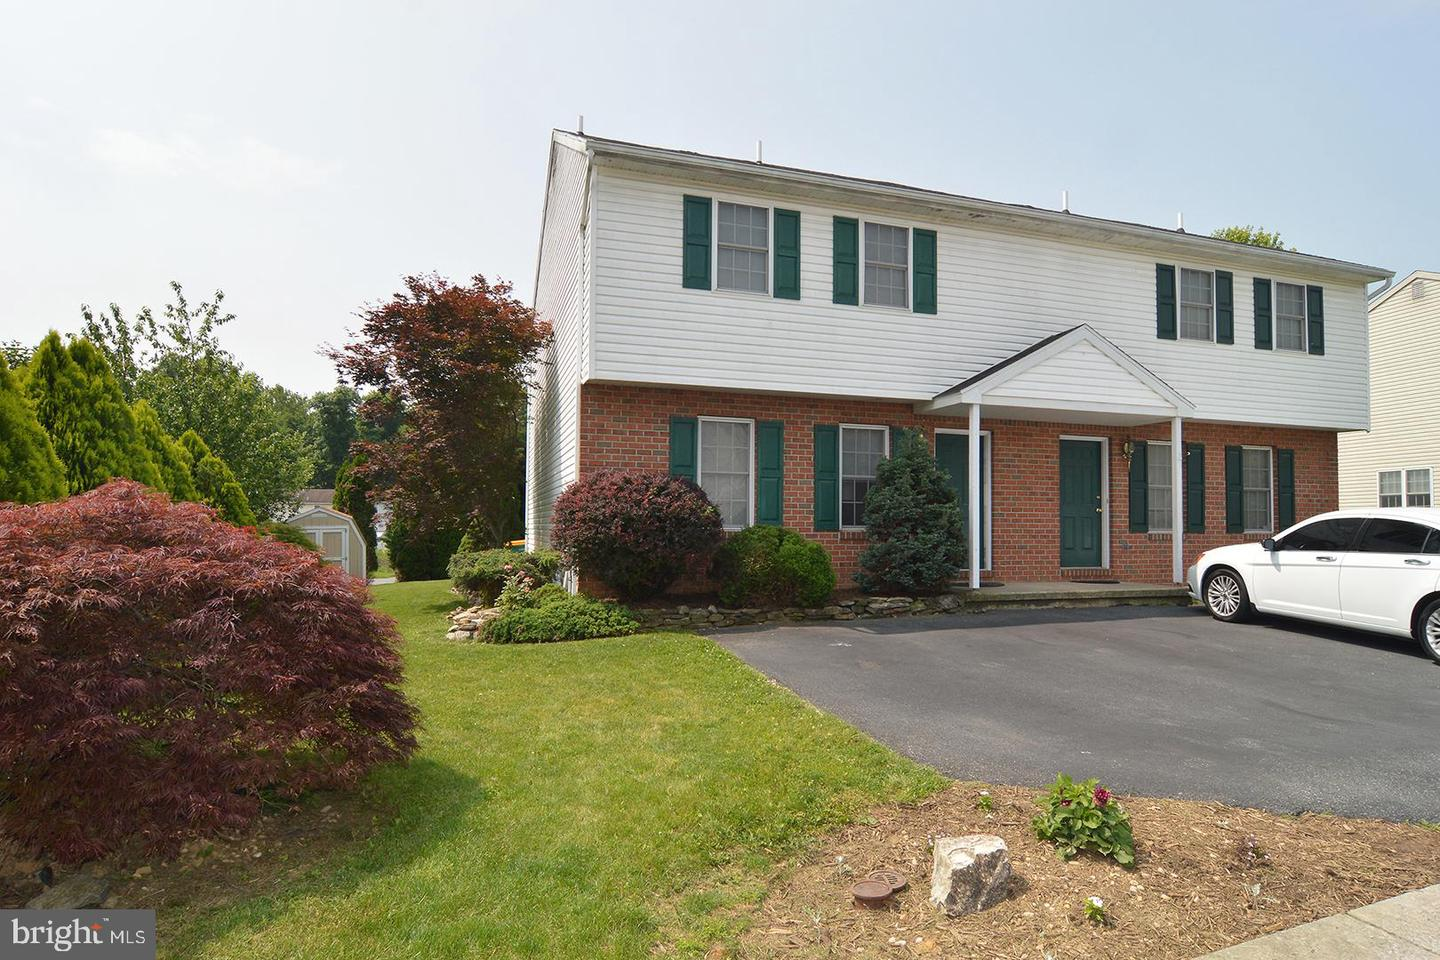 Photo of 117 Bainbridge Circle, Reading PA